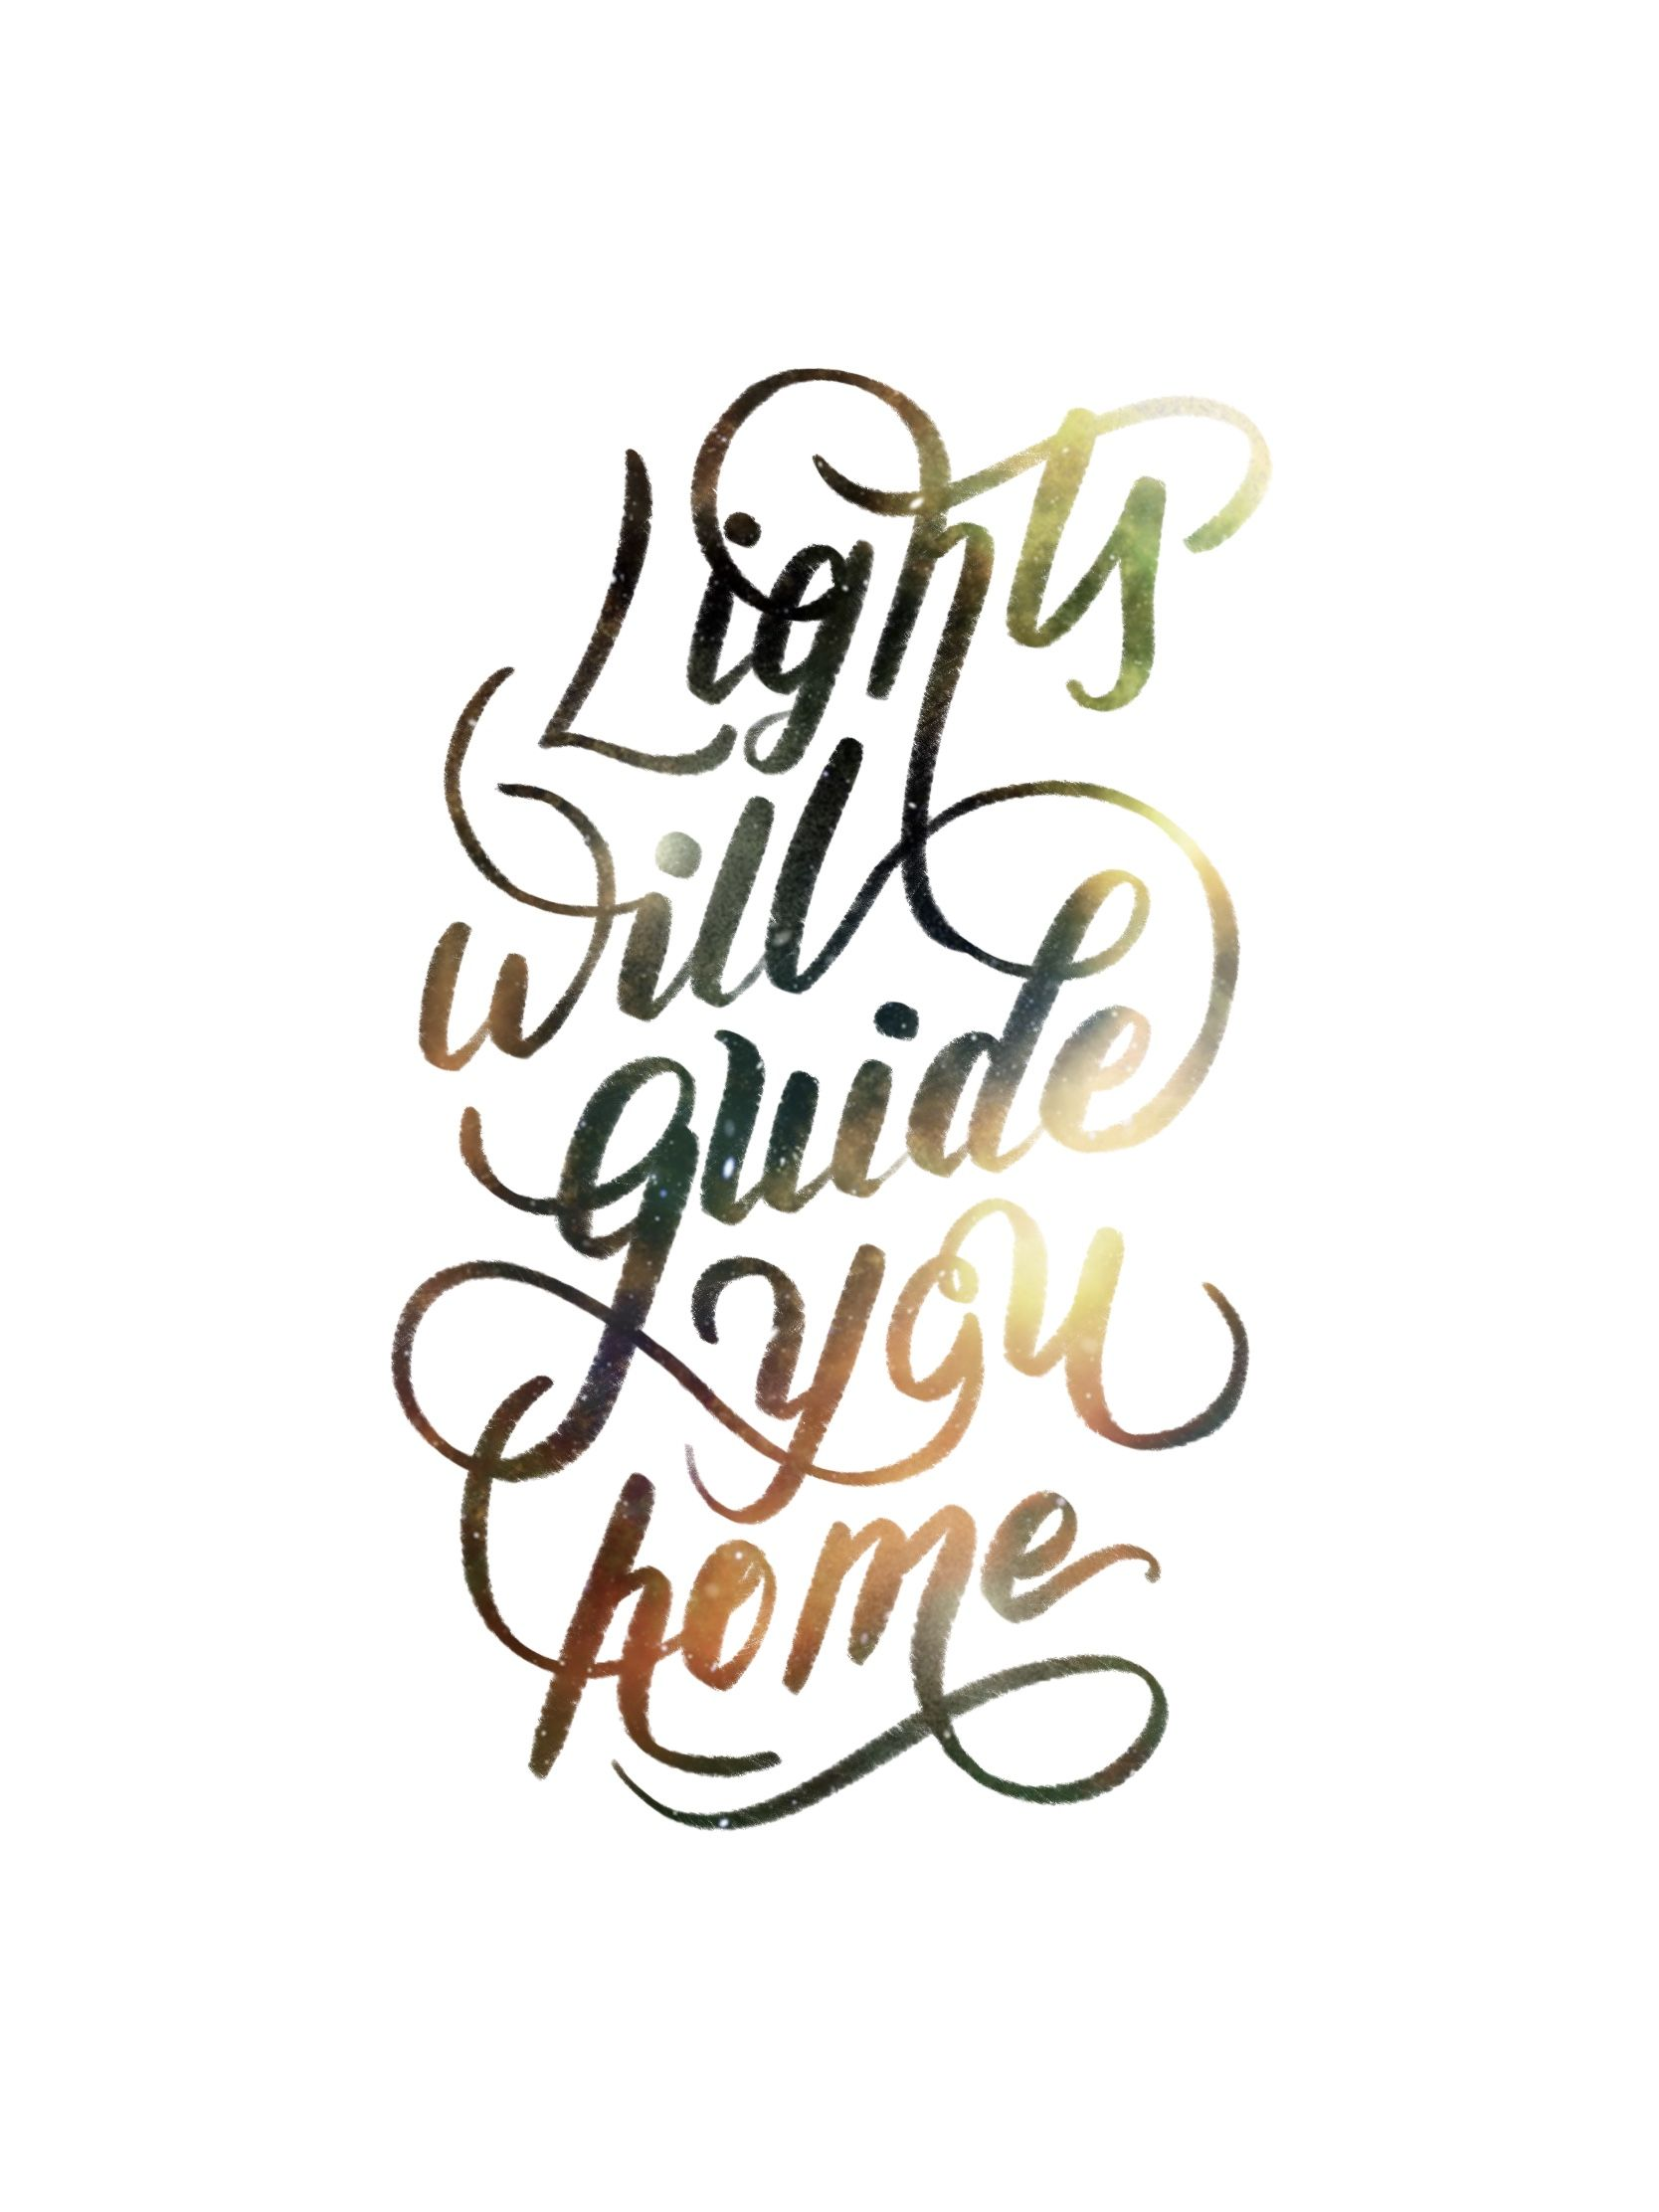 Lights will guide you home, Inspired by https://dribbble.com/Jennet ...